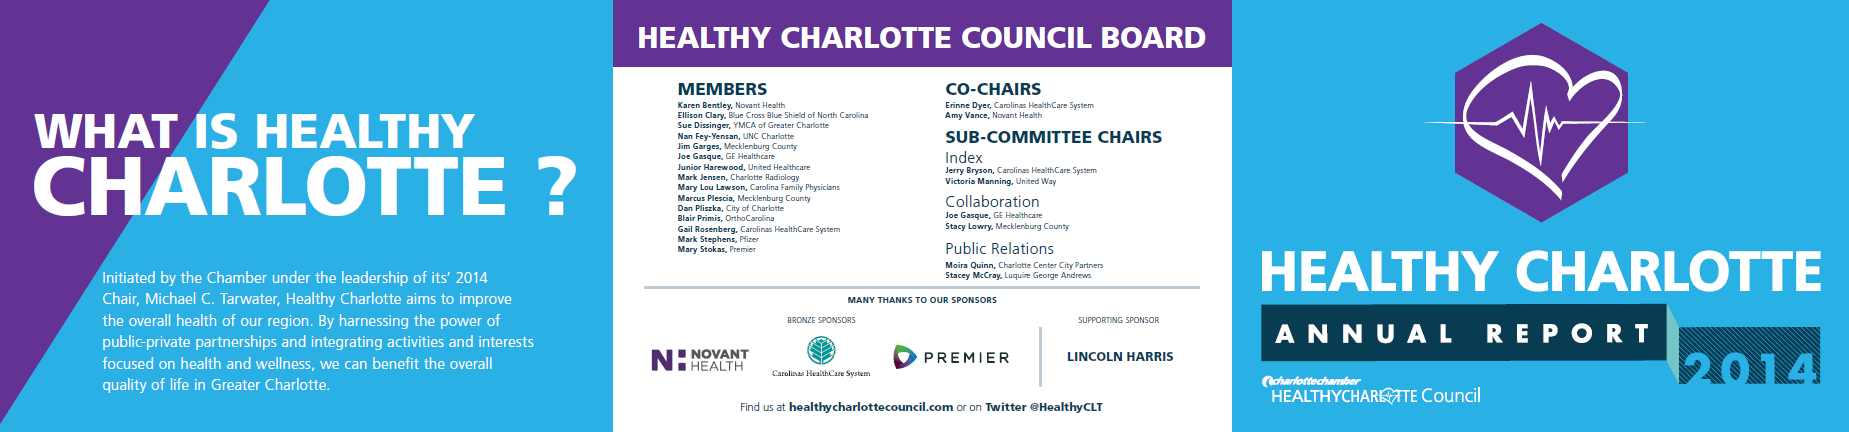 Healthy Charlotte 2014 Report_2